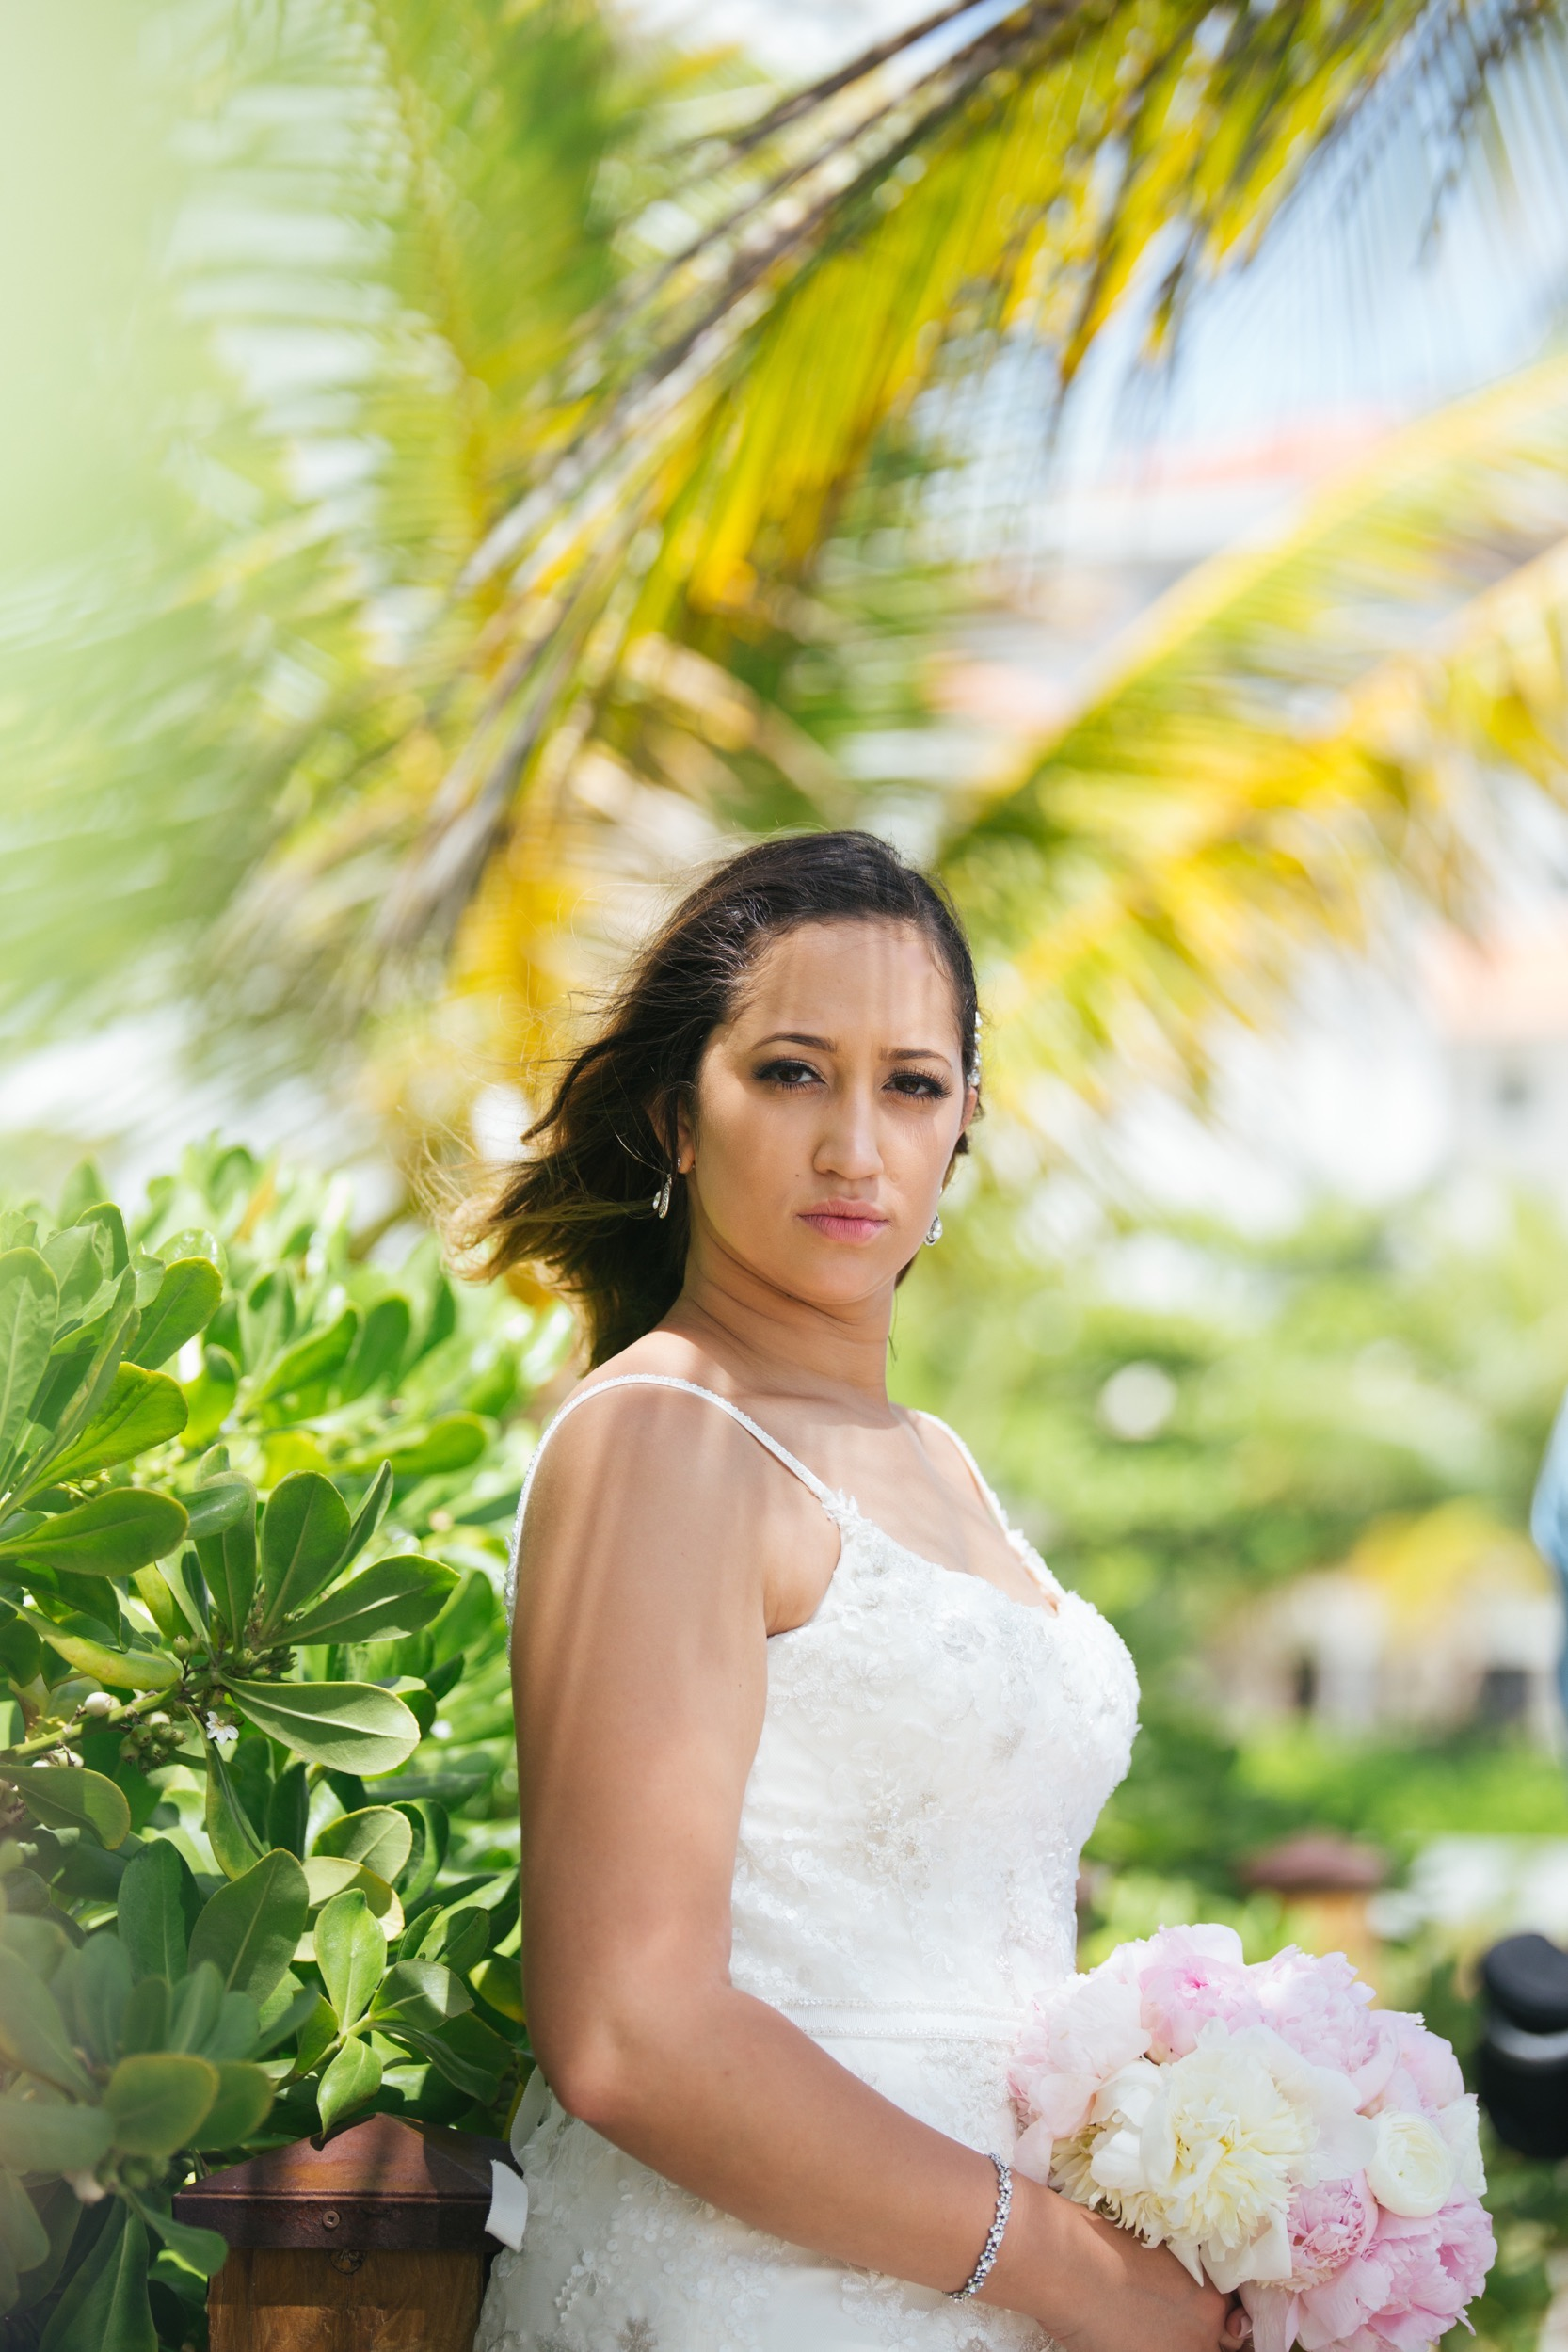 Le Cape Weddings - Destination Wedding in Puerto Rico - Condado Vanderbuilt Wedding -7265.jpg